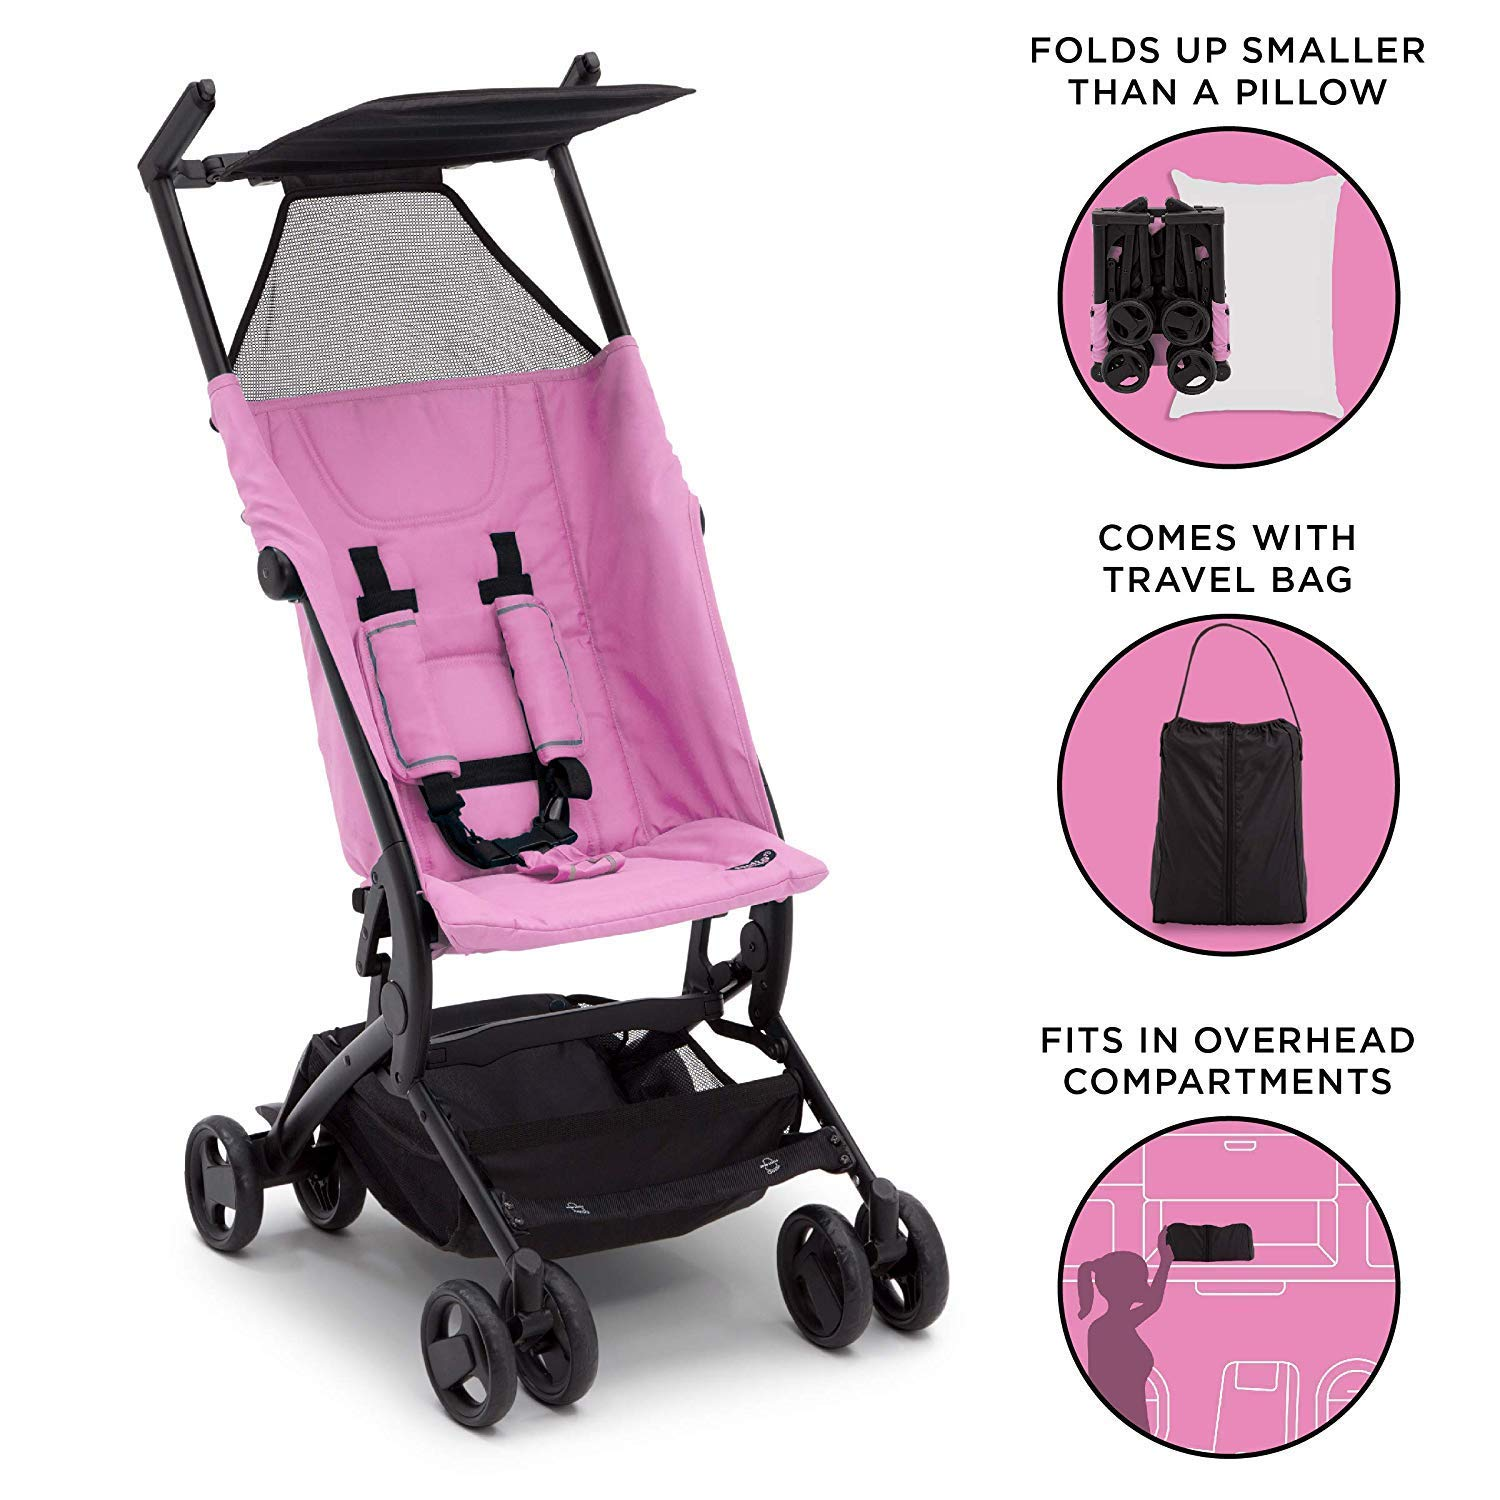 The Clutch Stroller By Delta Children Lightweight Compact Folding Stroller Includes Travel Bag Fits